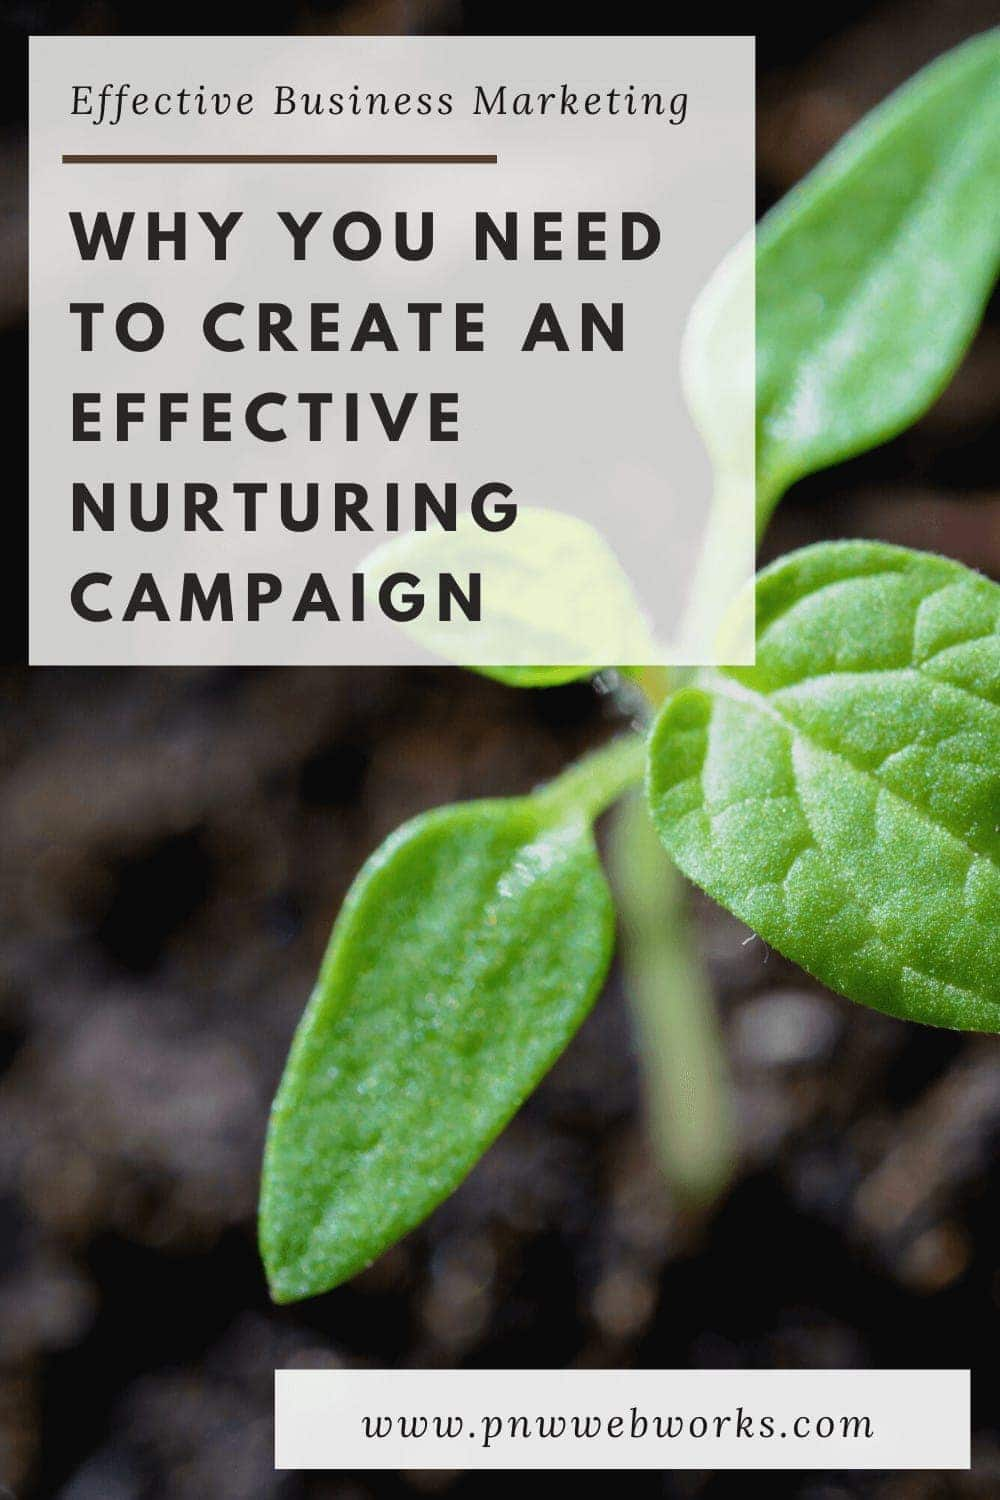 Why You Need to Create an Effective Nurturing Campaign